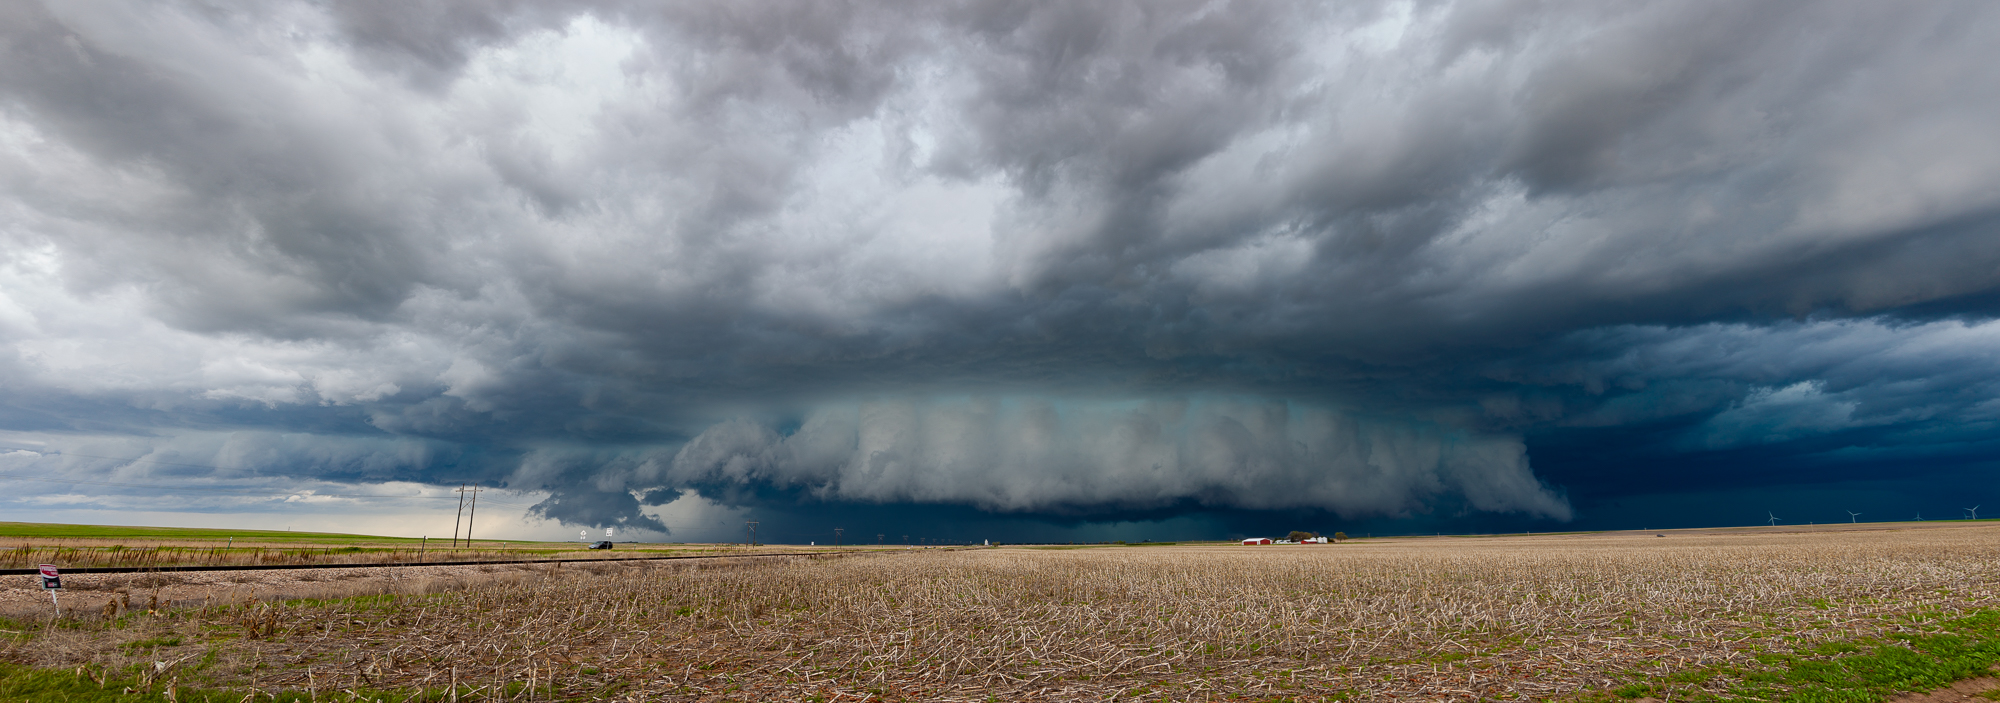 One more panorama from the wall cloud outside Flemming, CO.